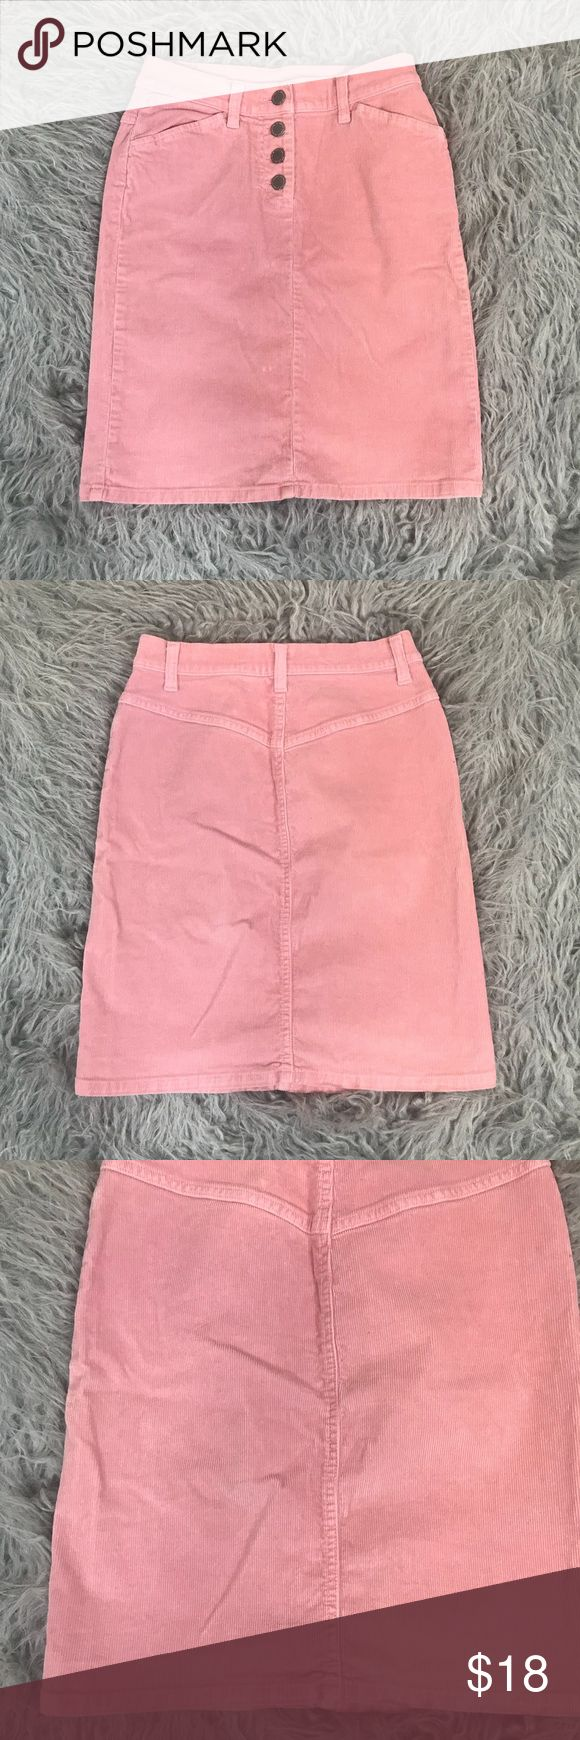 """Vintage 90s United Colors Of Benetton Mini Skirt In good vintage condition. Small flaw on front of skirt. It is shown in close up picture where I am pointing. Pink corduroy. 4 button down buttons. No stretch! High rise fit. Made in Italy. Size 40. Measures as a size 24. Please refer to measurements to ensure a proper fit.  Waist: 12"""" Length: 18"""" United Colors Of Benetton Skirts Mini"""